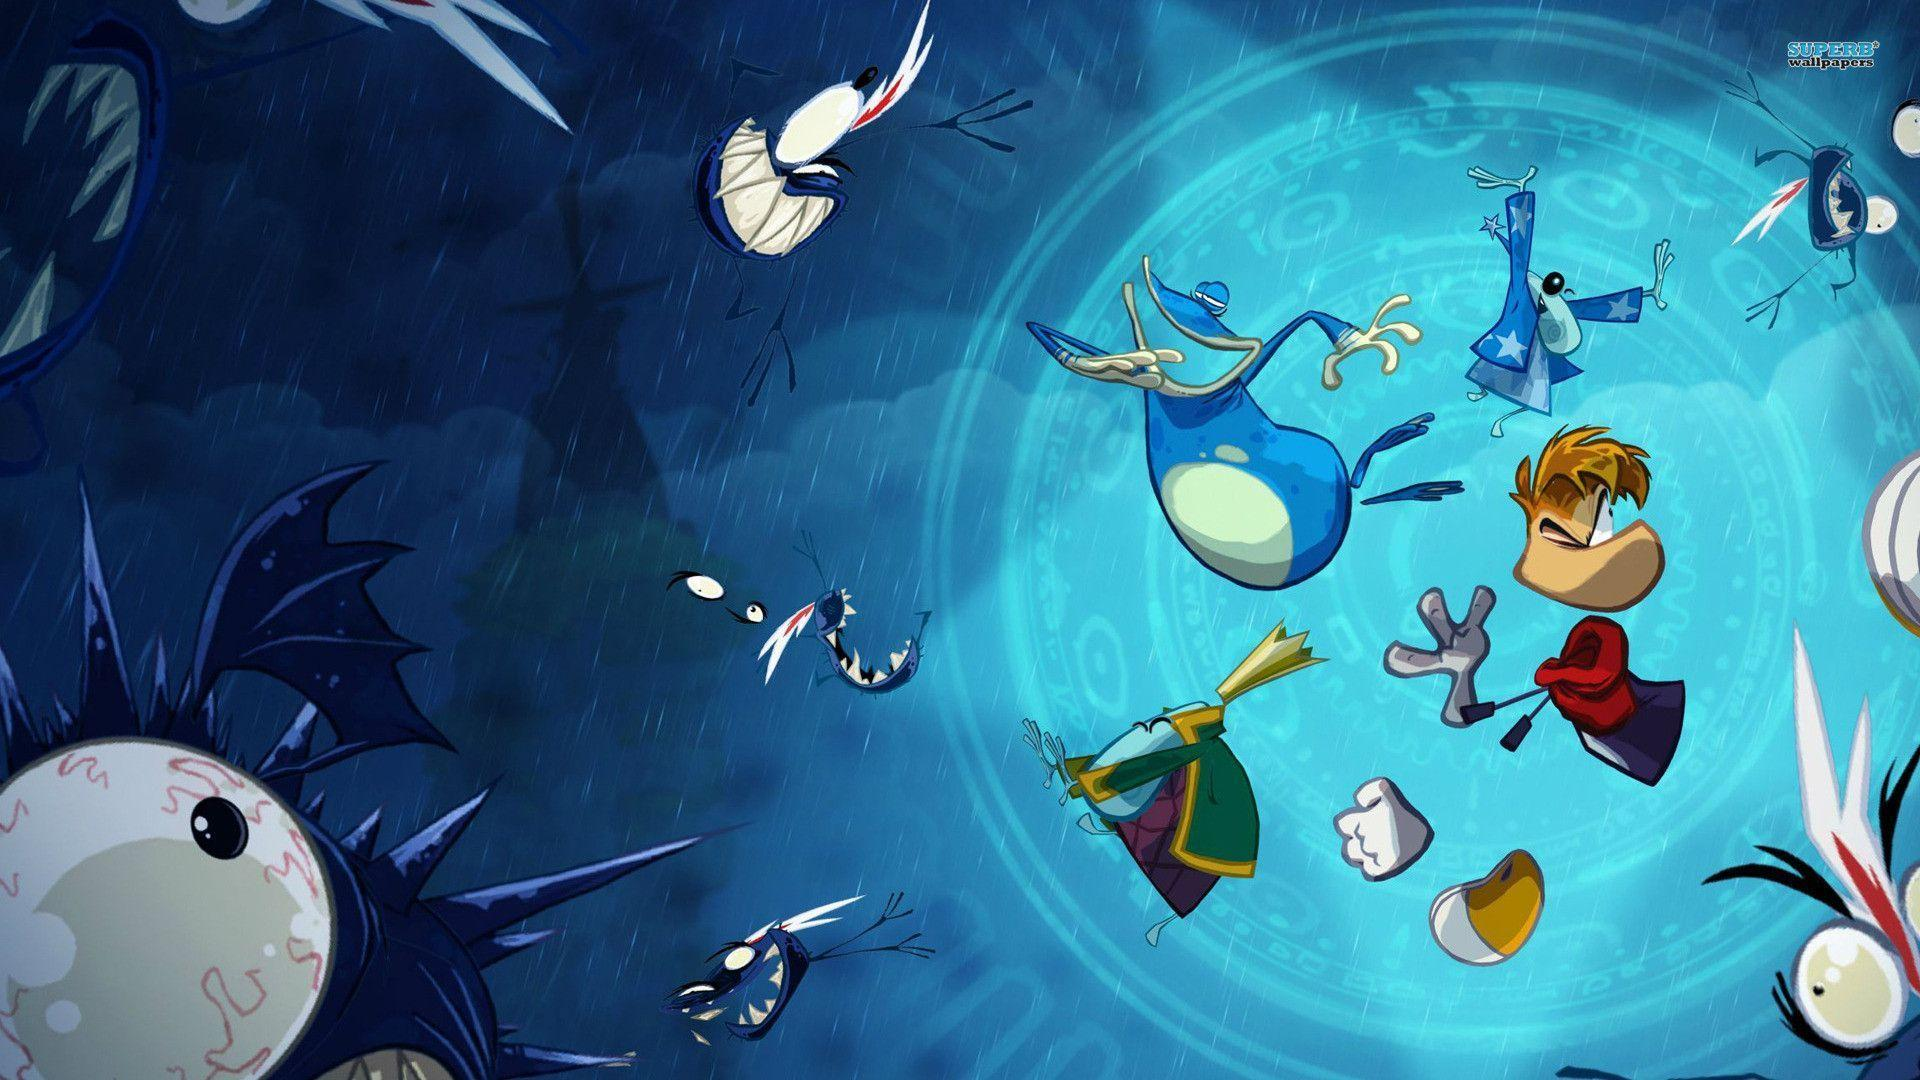 Rayman Origins Wallpapers